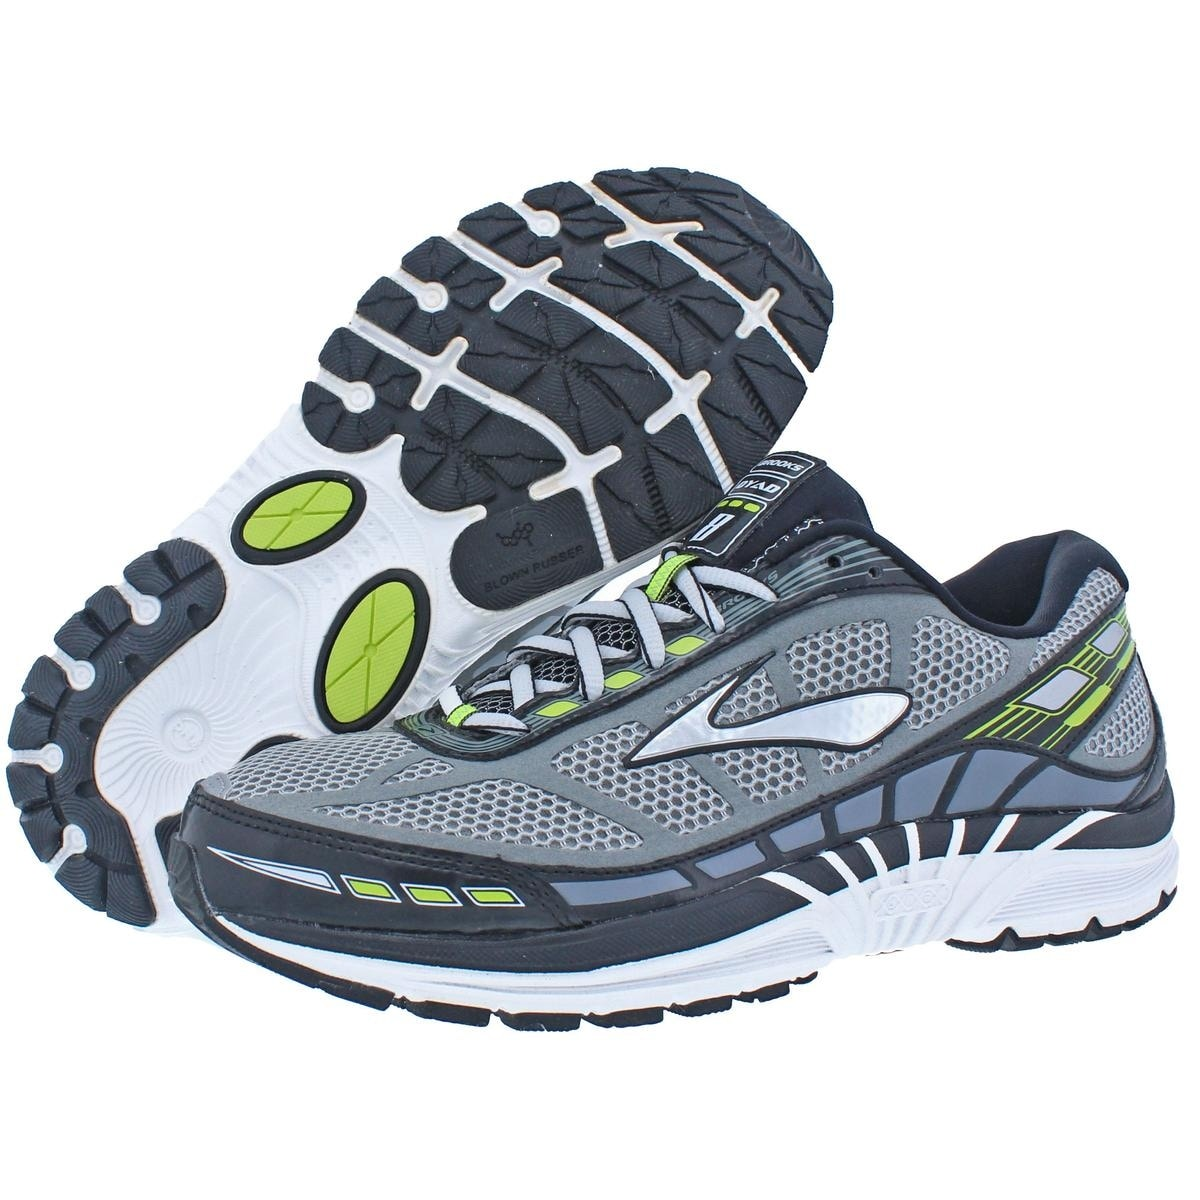 5454f0818c2 Shop Brooks Mens Dyad 8 Running Shoes Running Lightweight - 8 extra wide  (4e) - Free Shipping Today - Overstock.com - 22581426